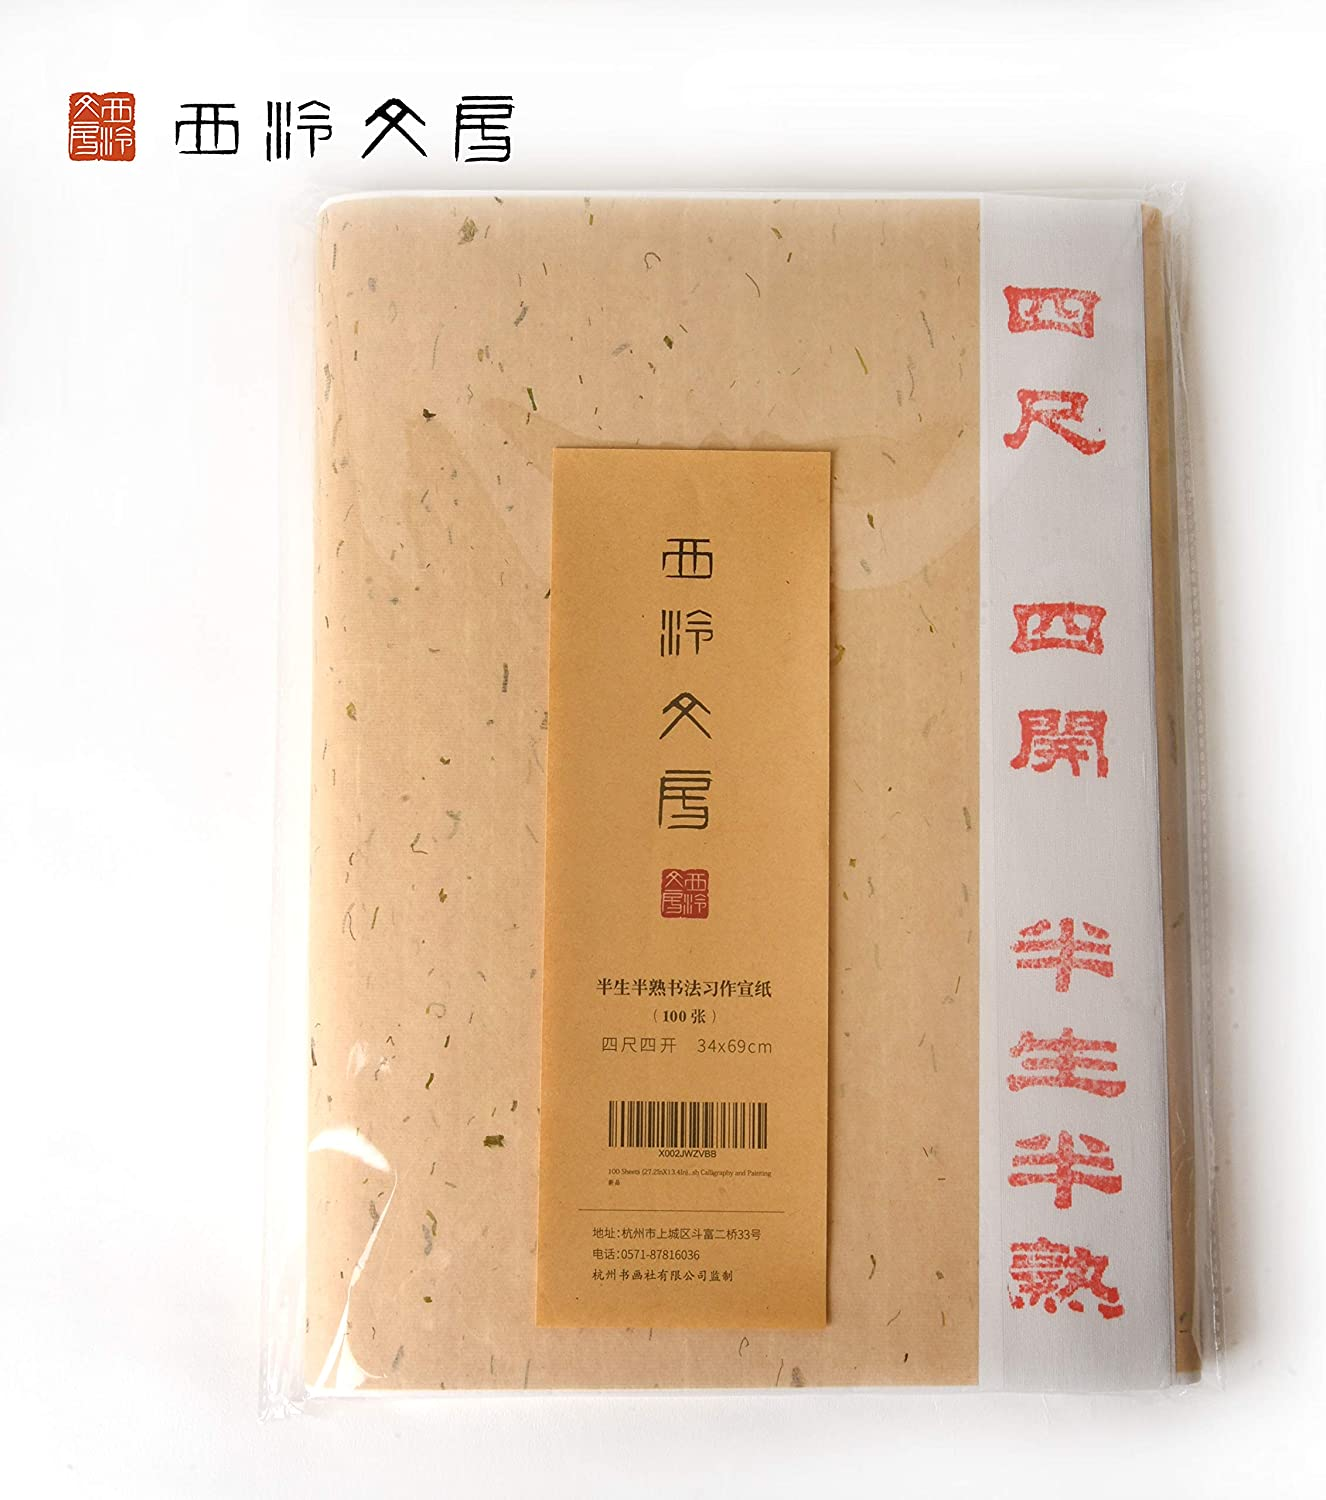 13.8InX13.4In Xuan Paper Half Raw Half Ripe Drawing Rice Paper for sumi-e Brush Chinese Calligraphy and Painting 1000 Sheets 35cmX34cm